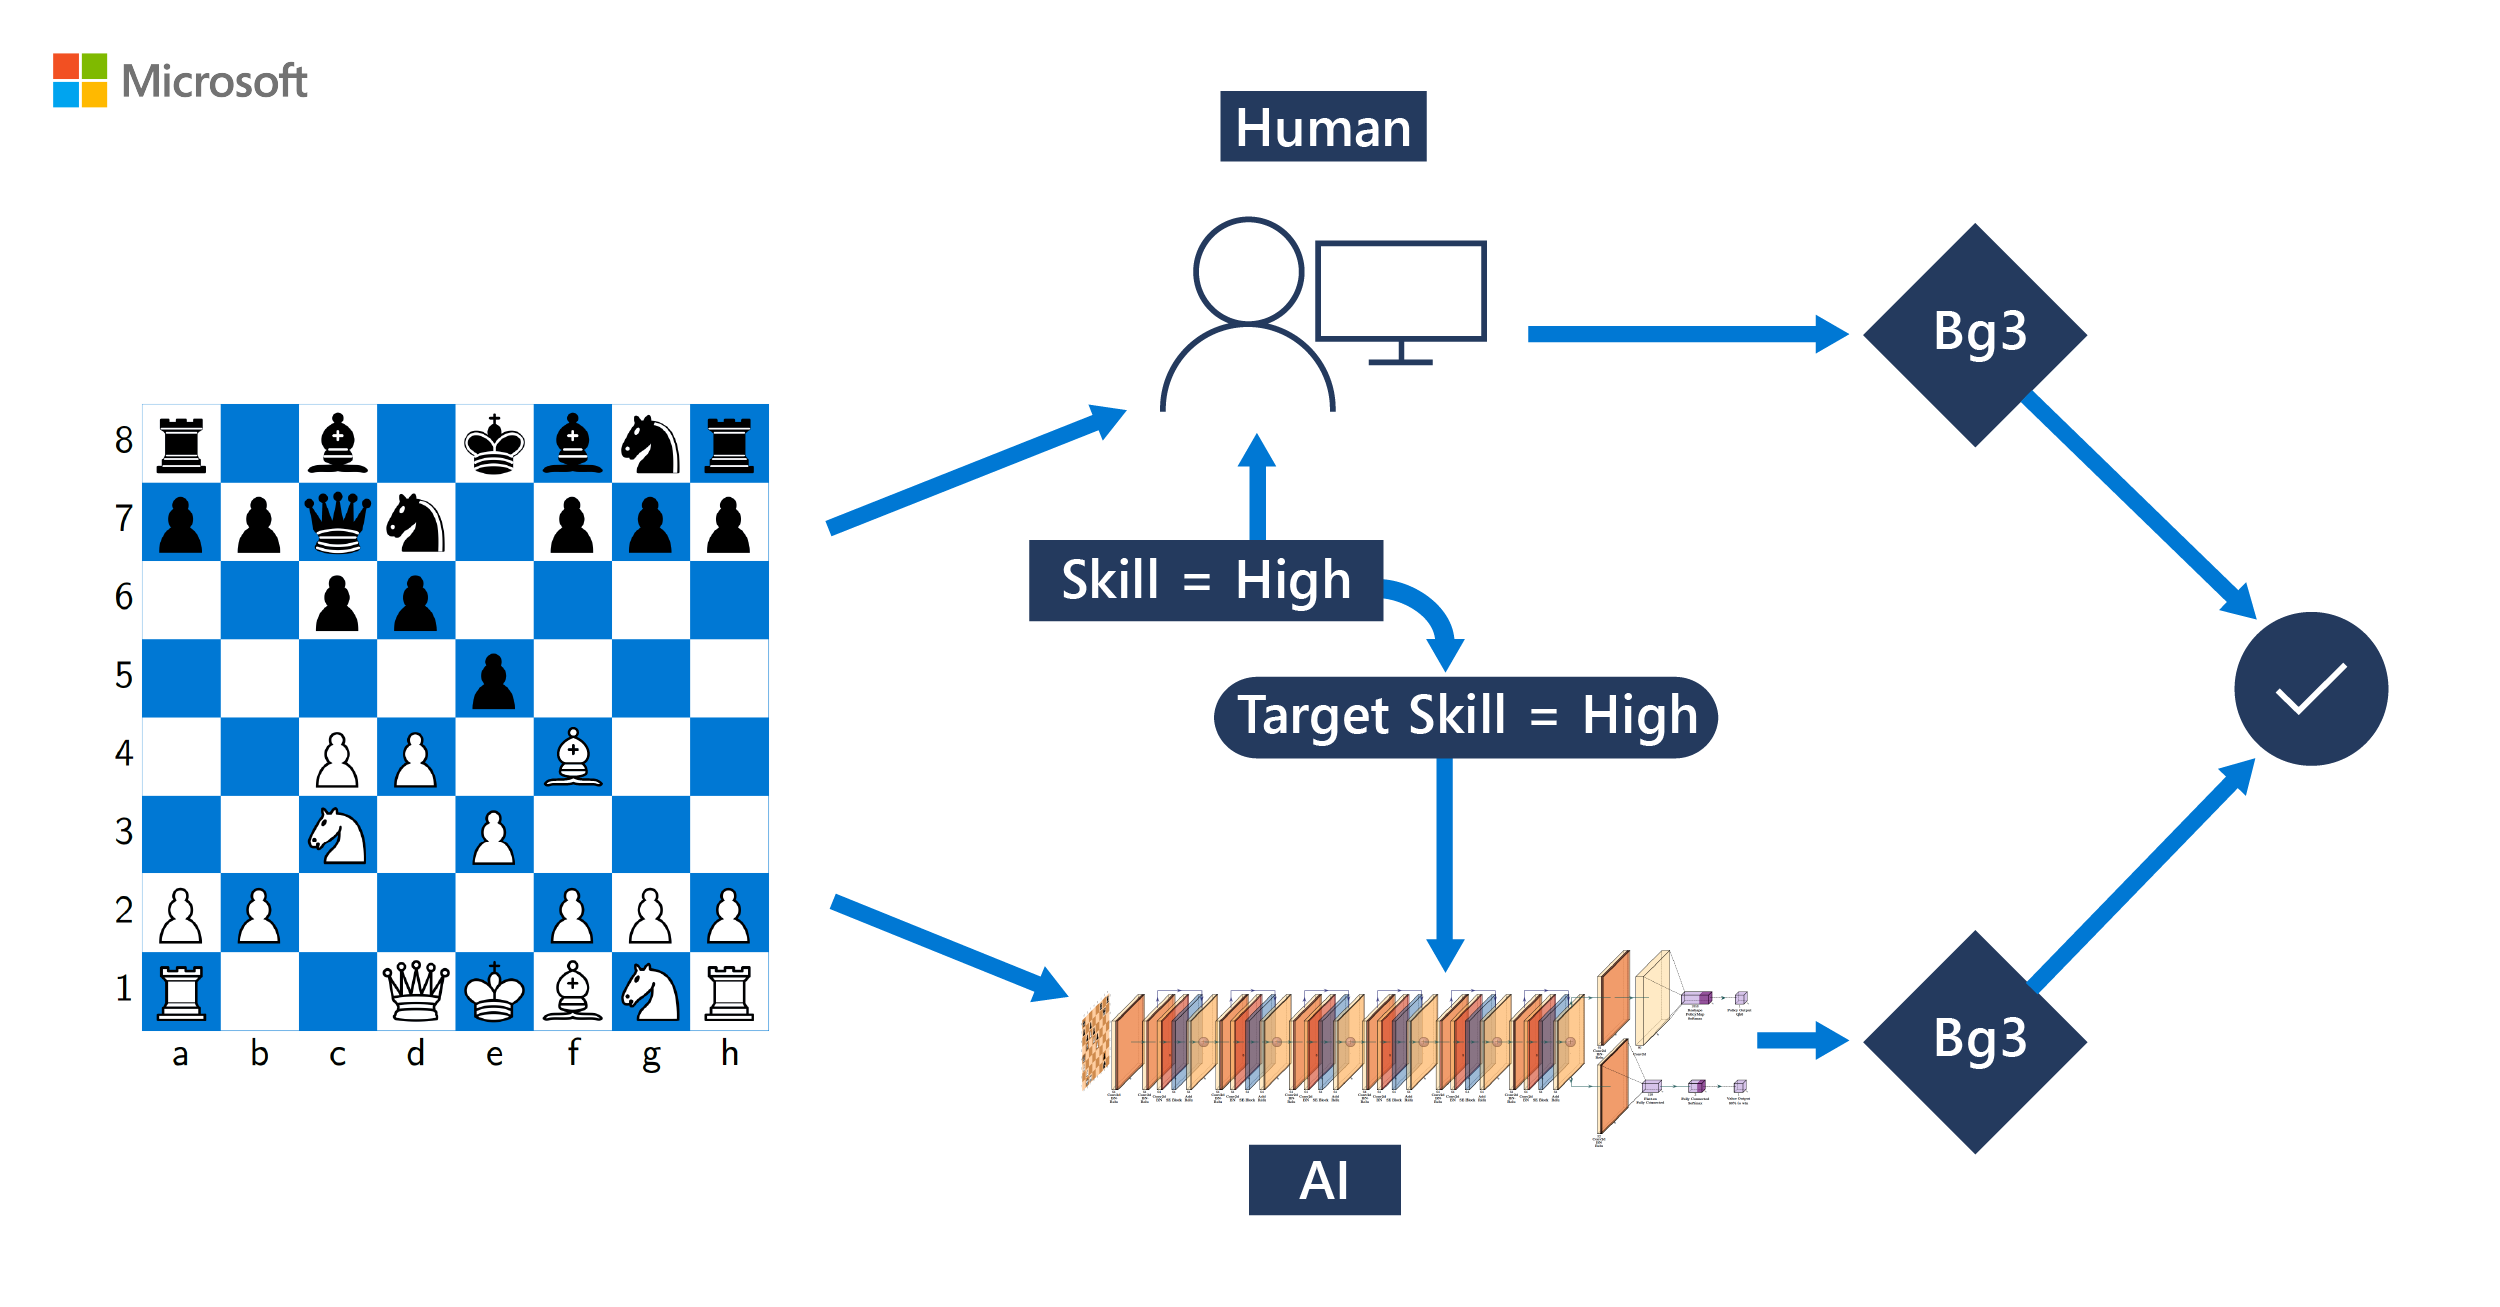 The human side of AI for chess